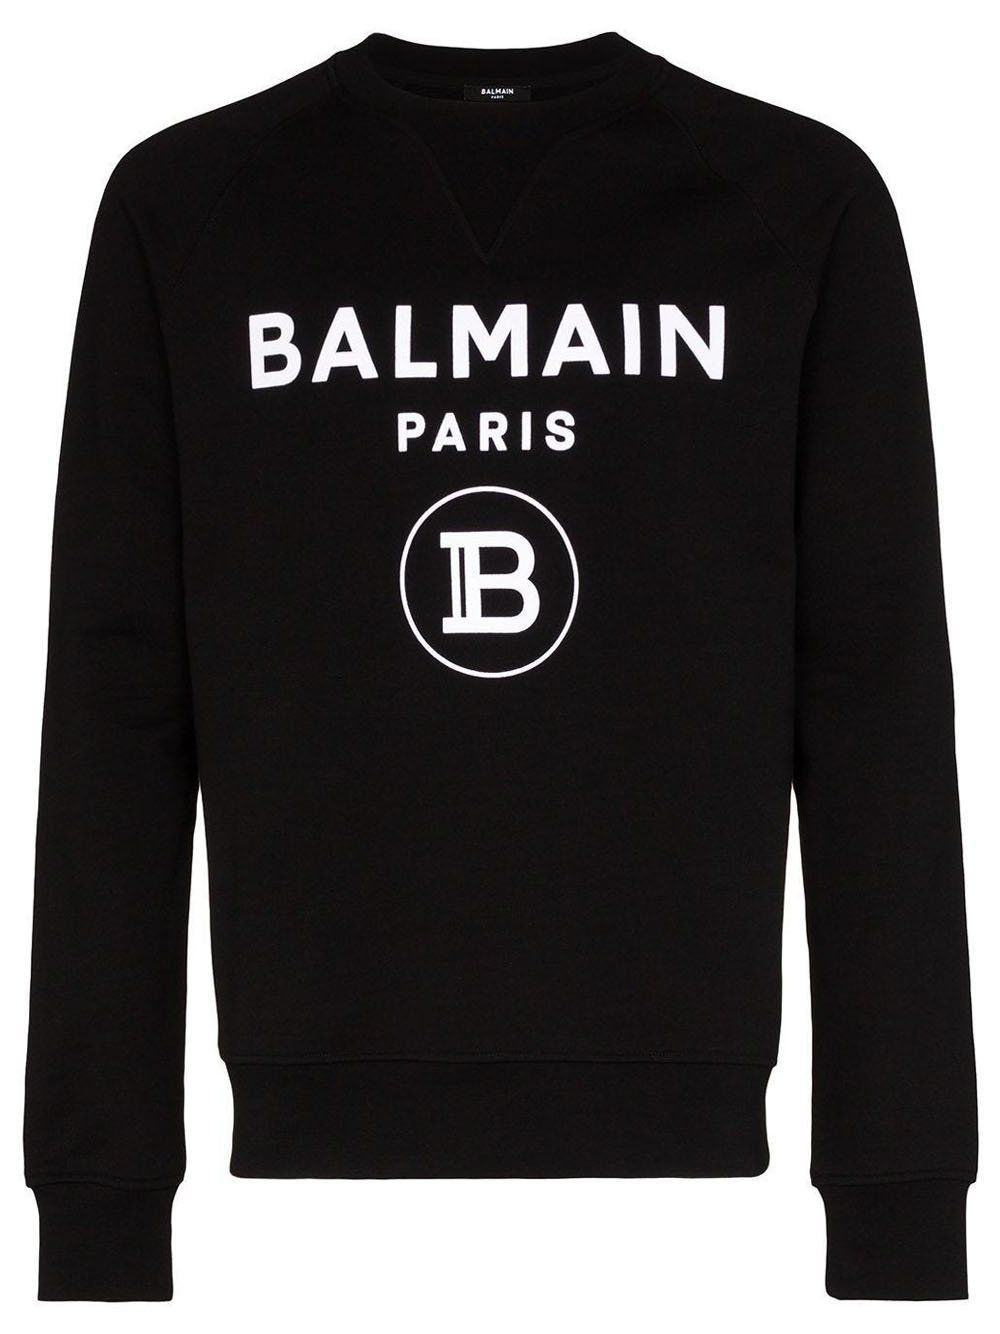 BALMAIN Logo Print Sweatshirt Black/White - Maison De Fashion